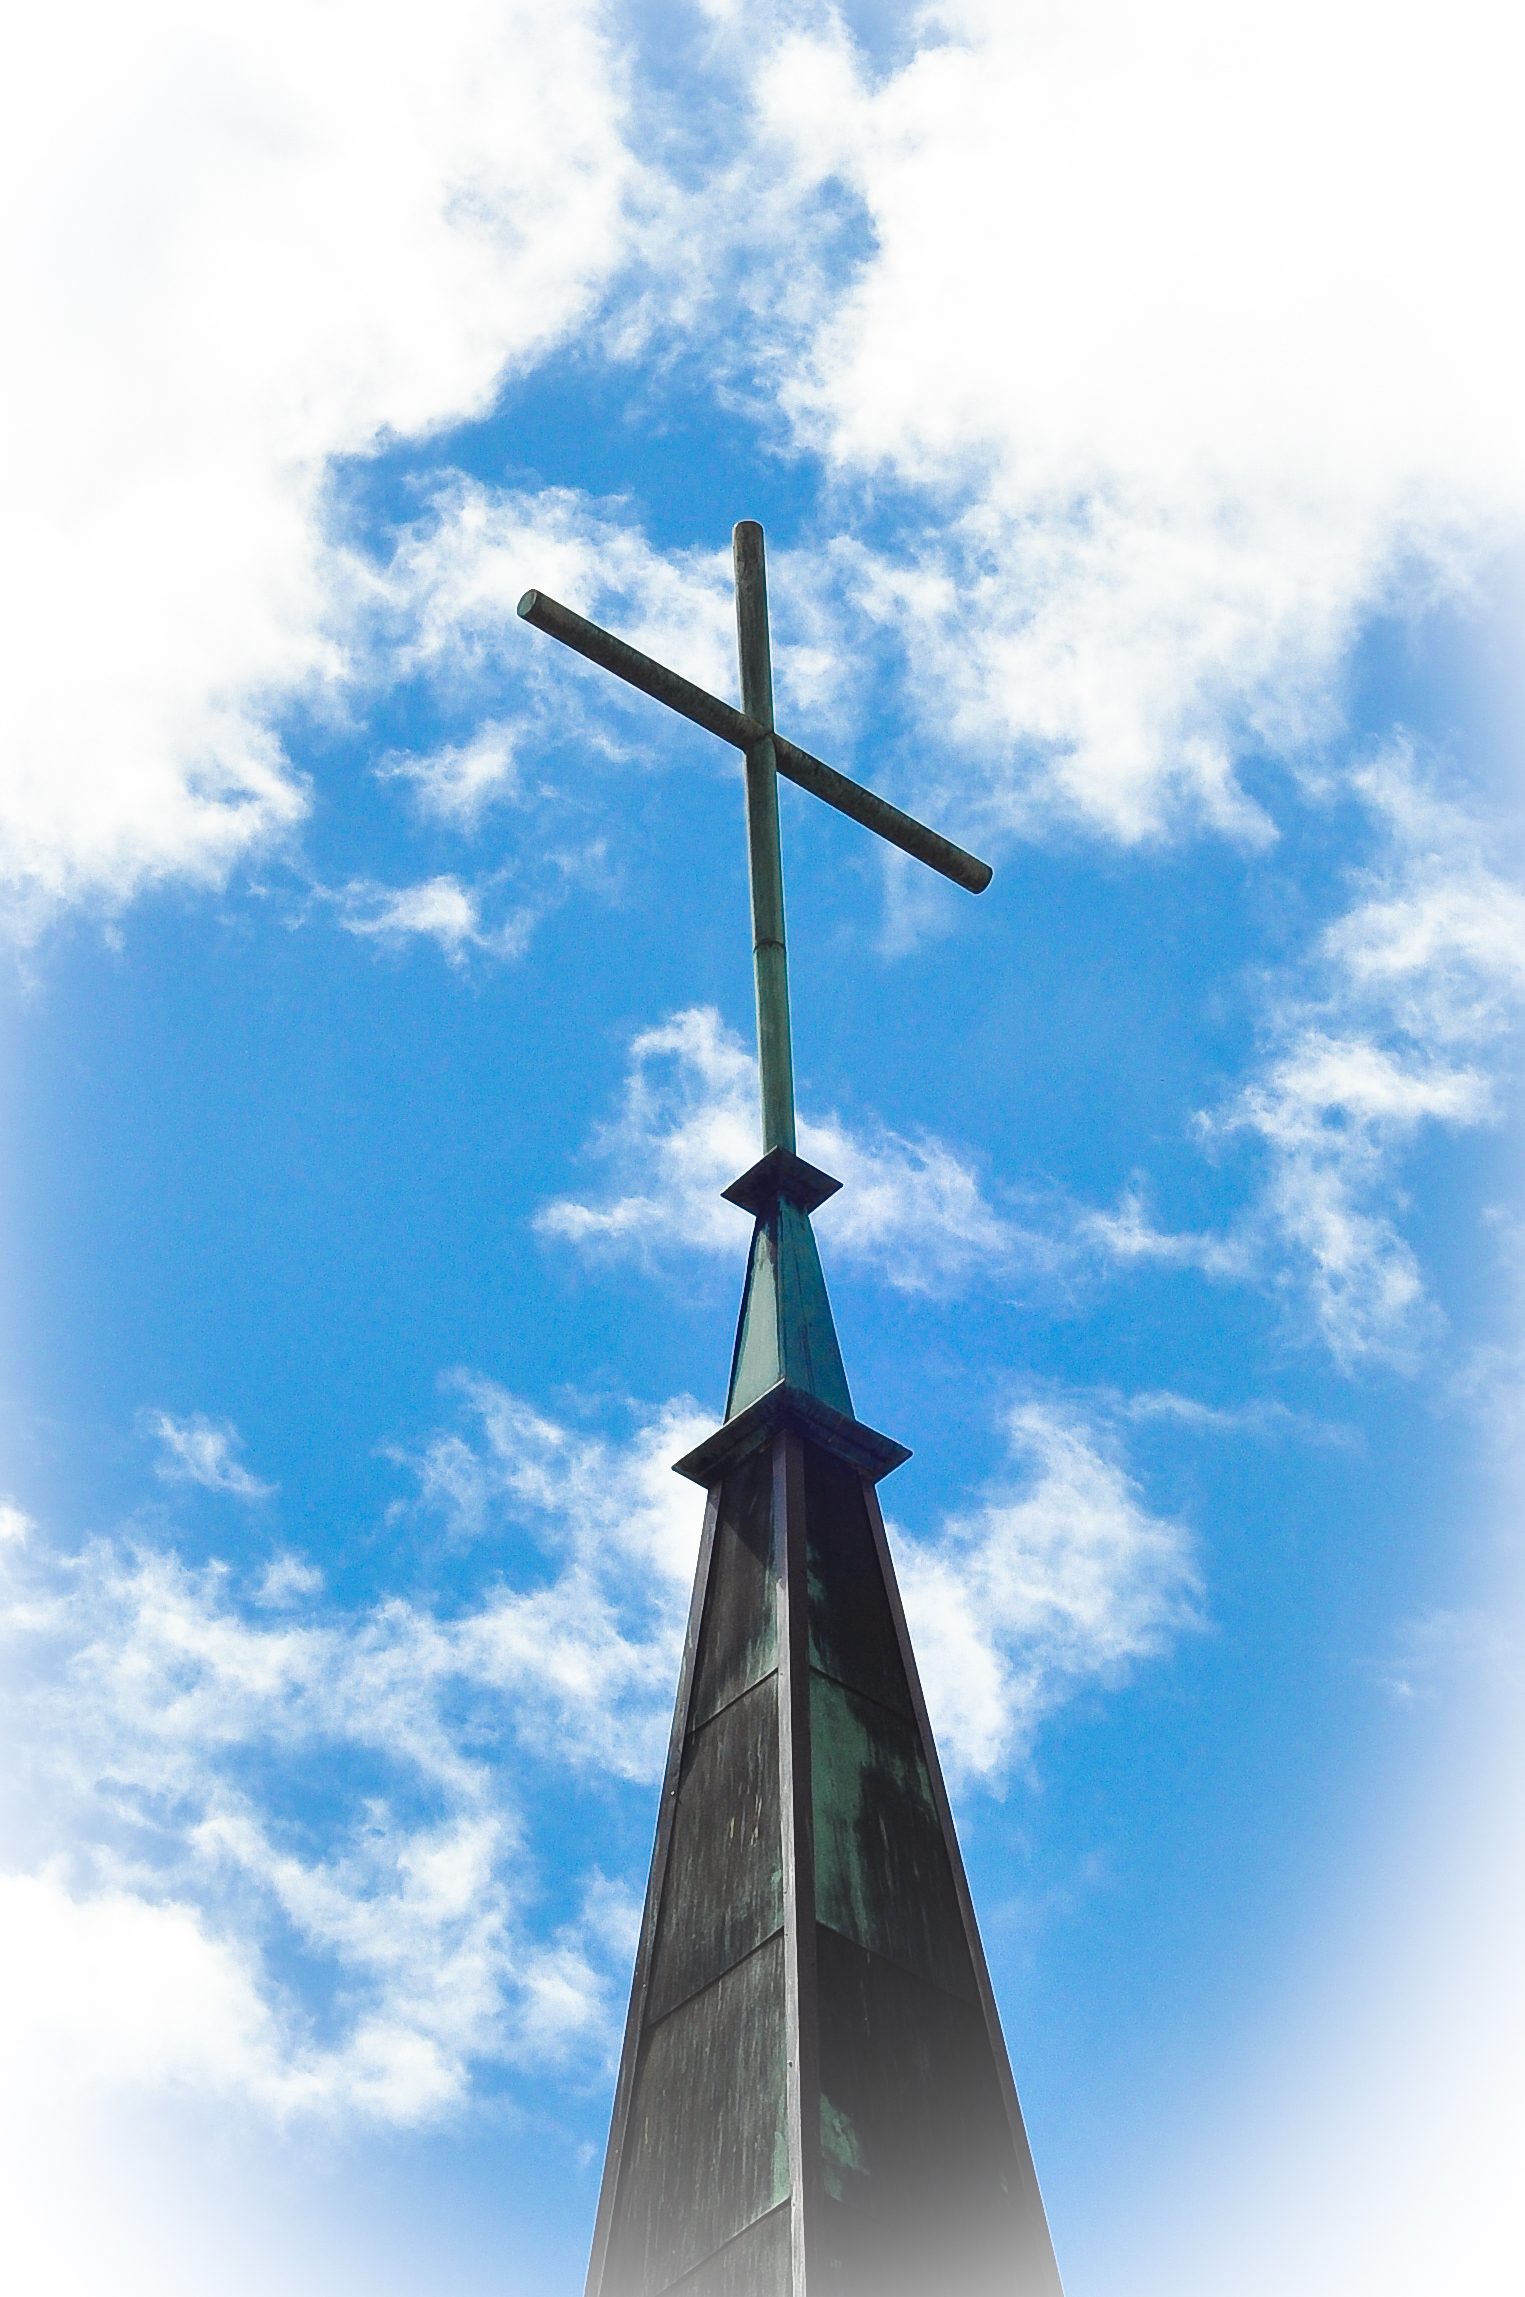 images/stories/HeaderImages/Frame1/Cross-on-steeple.jpg